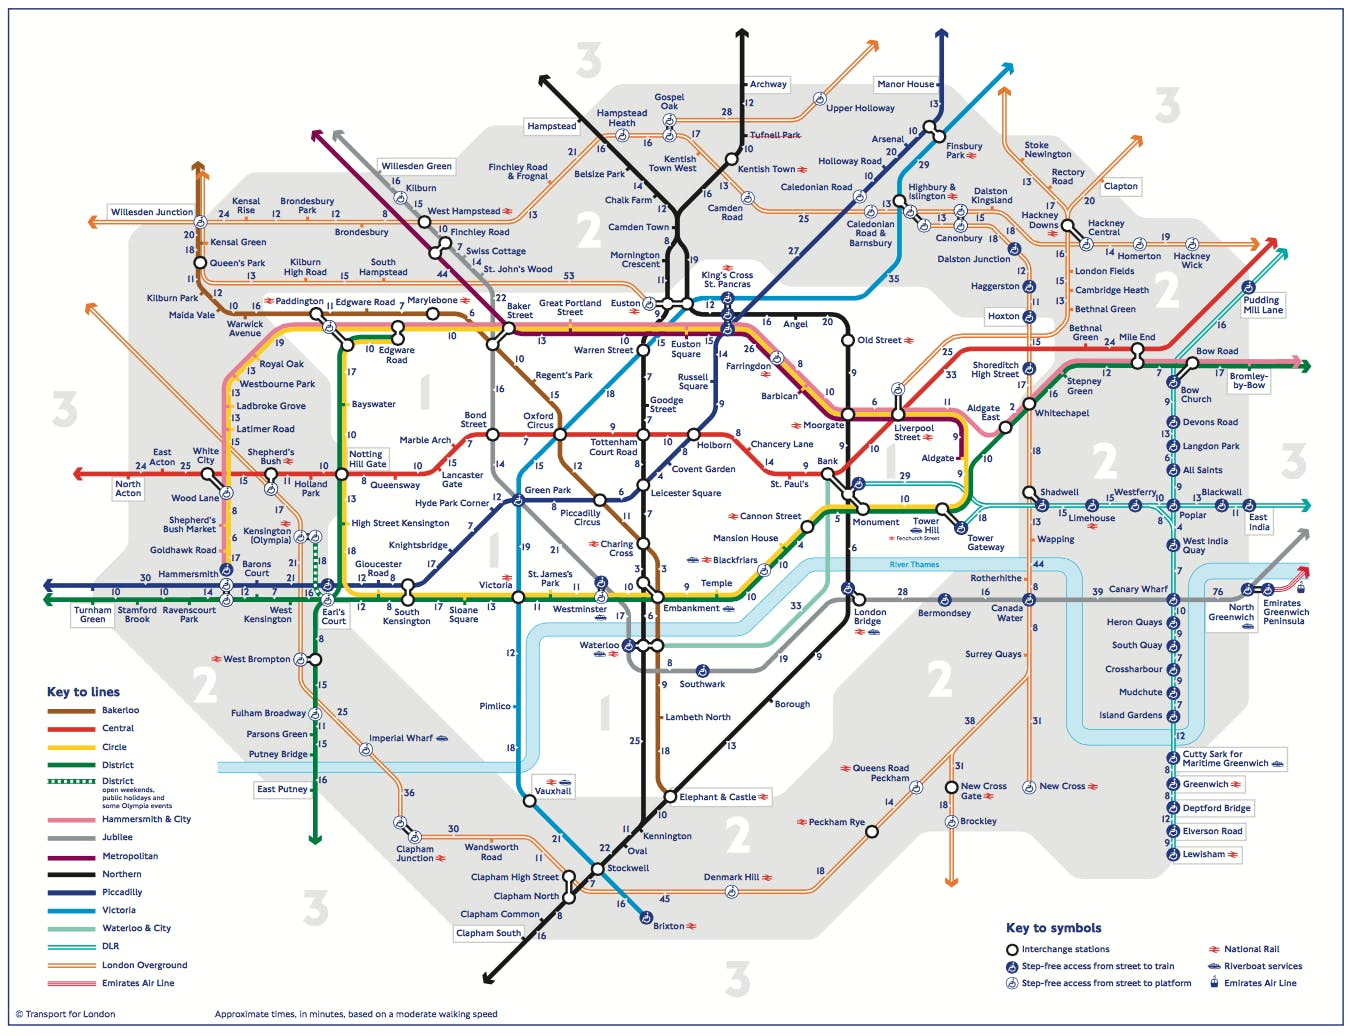 London Stations Map.A New London Tube Map Shows Walking Times Between Stations News